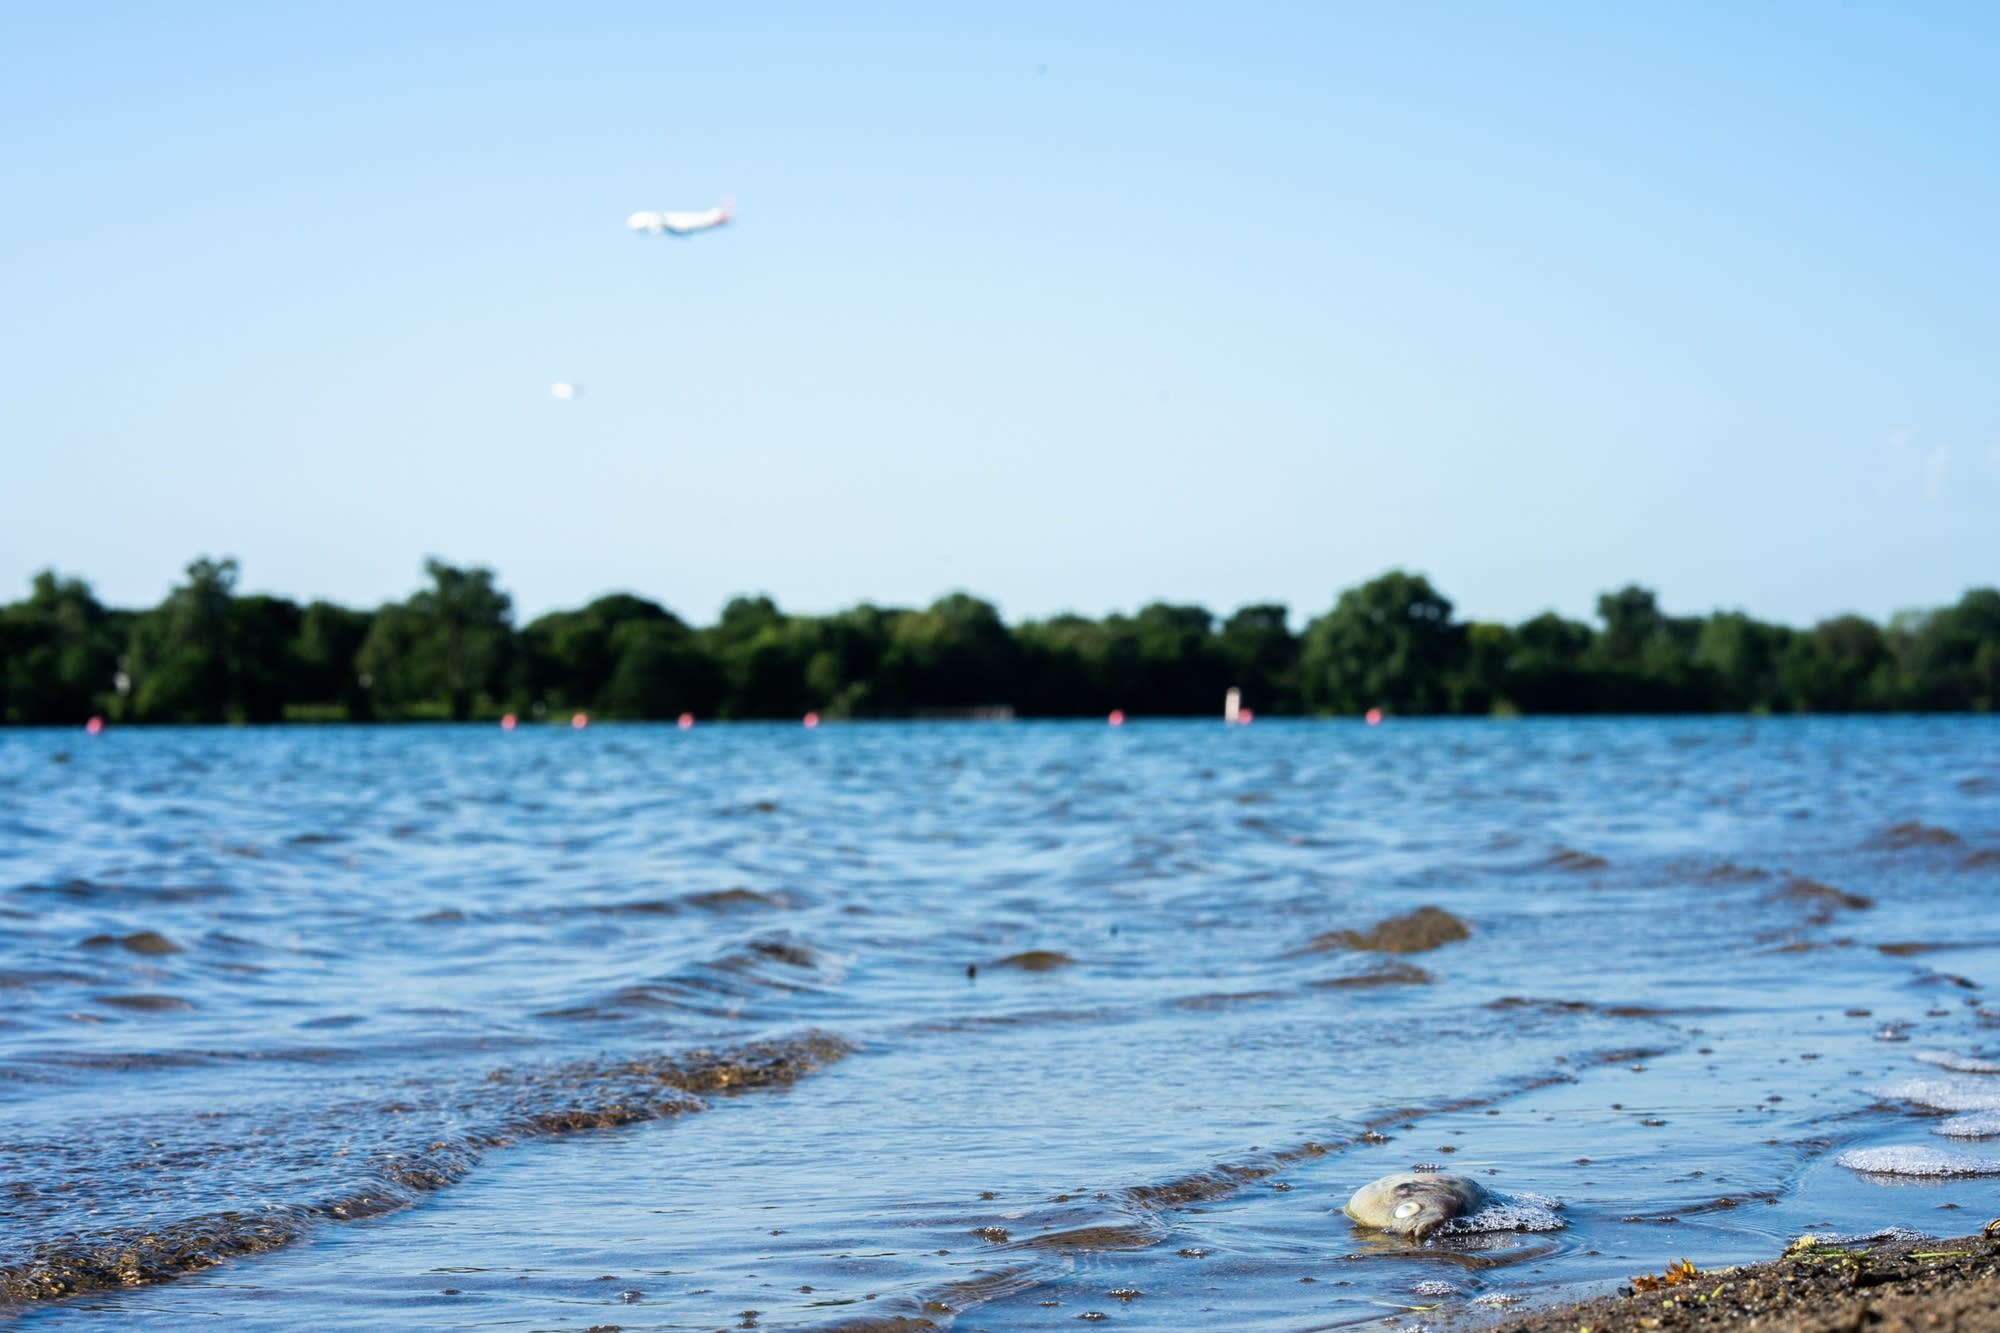 A plane descends toward over Lake Nokomis.